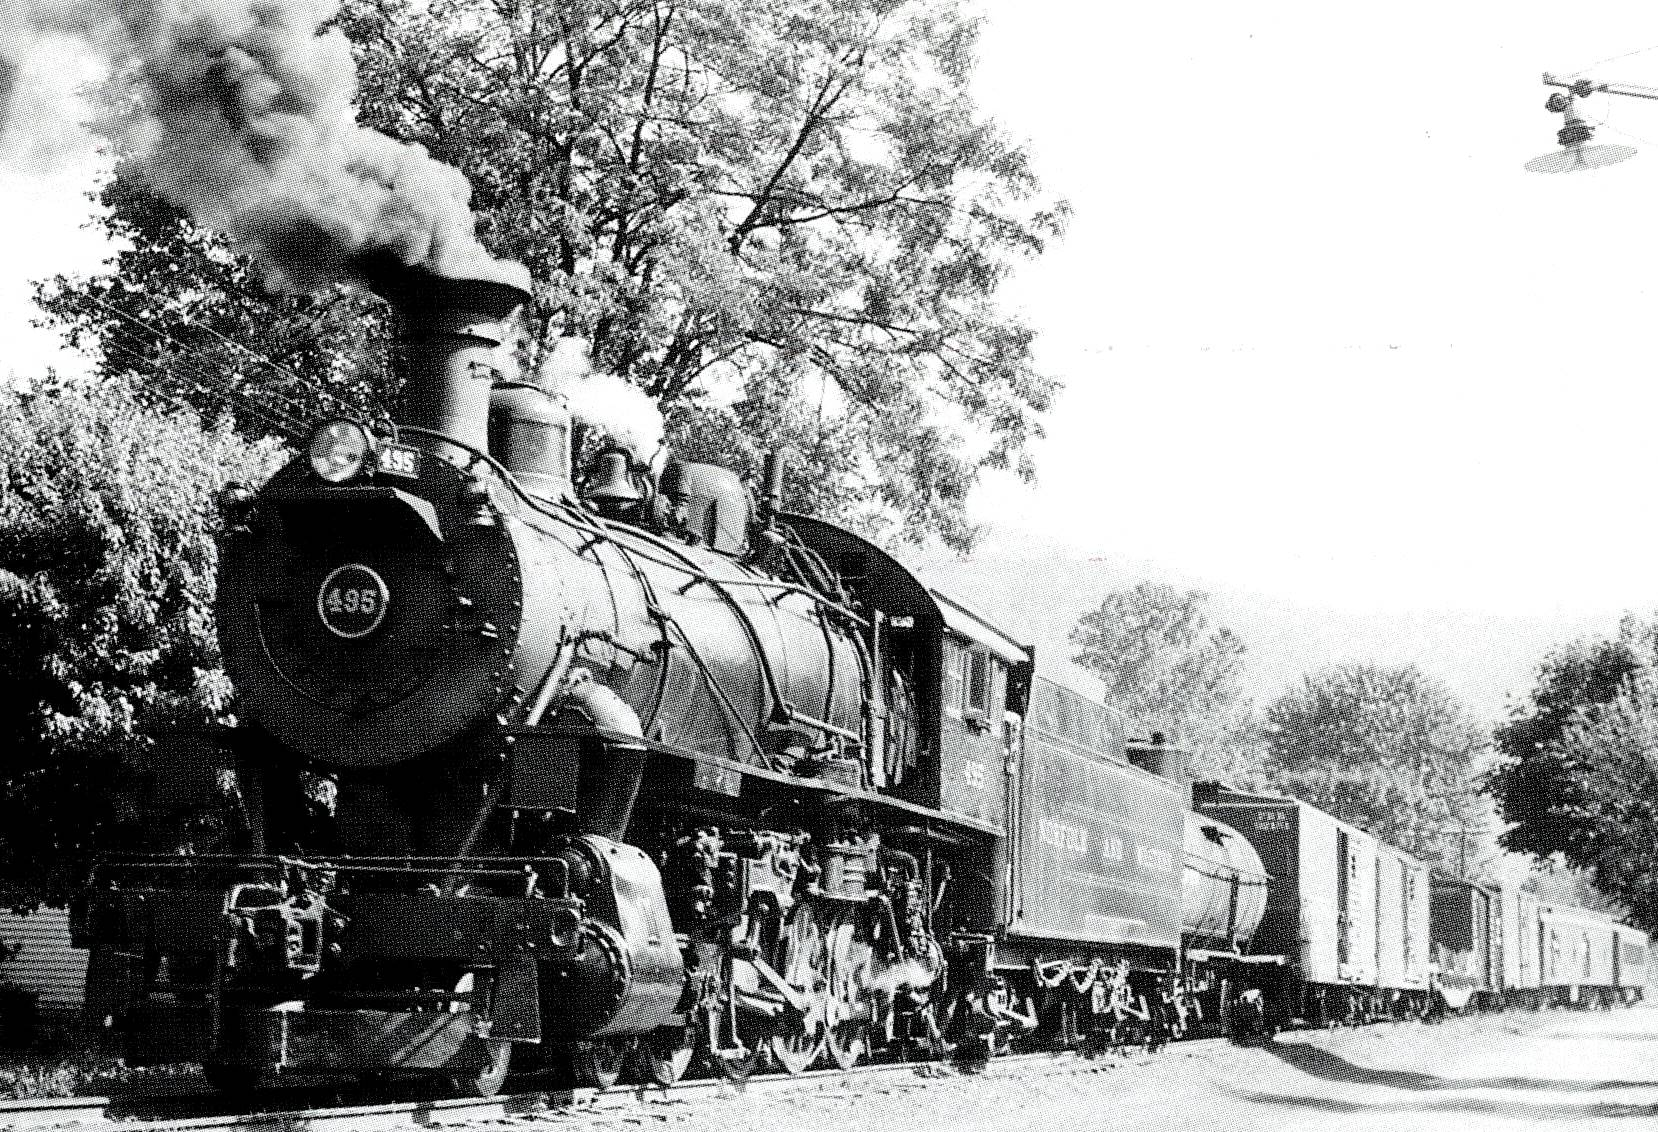 steam engine CROP AND CONTRAST